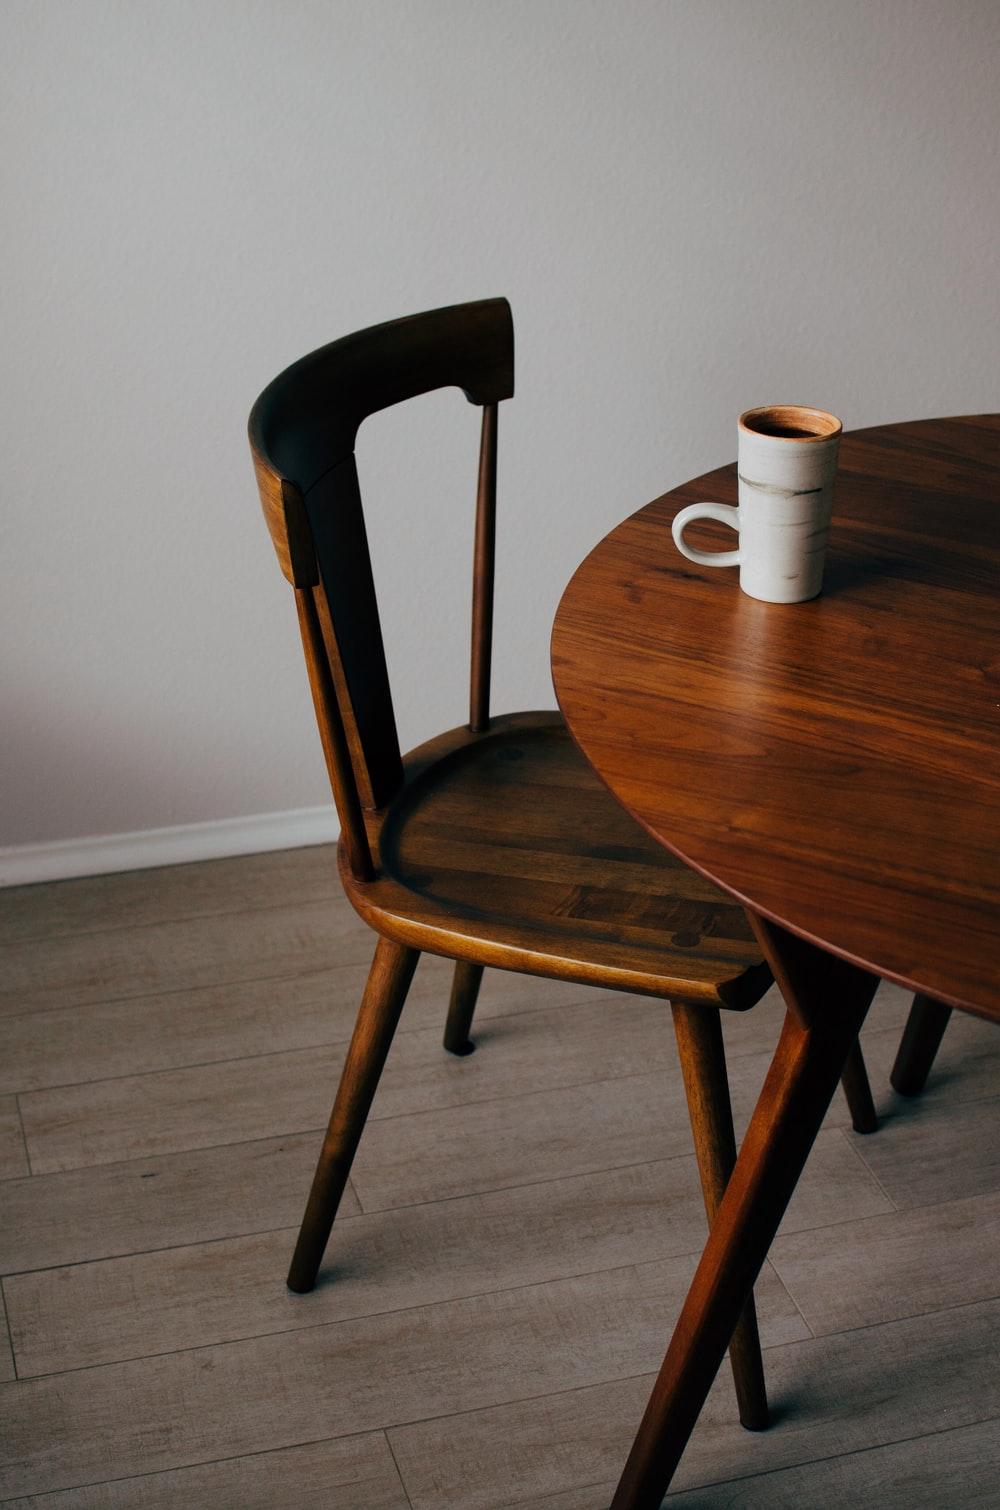 white ceramic mug on brown wooden table